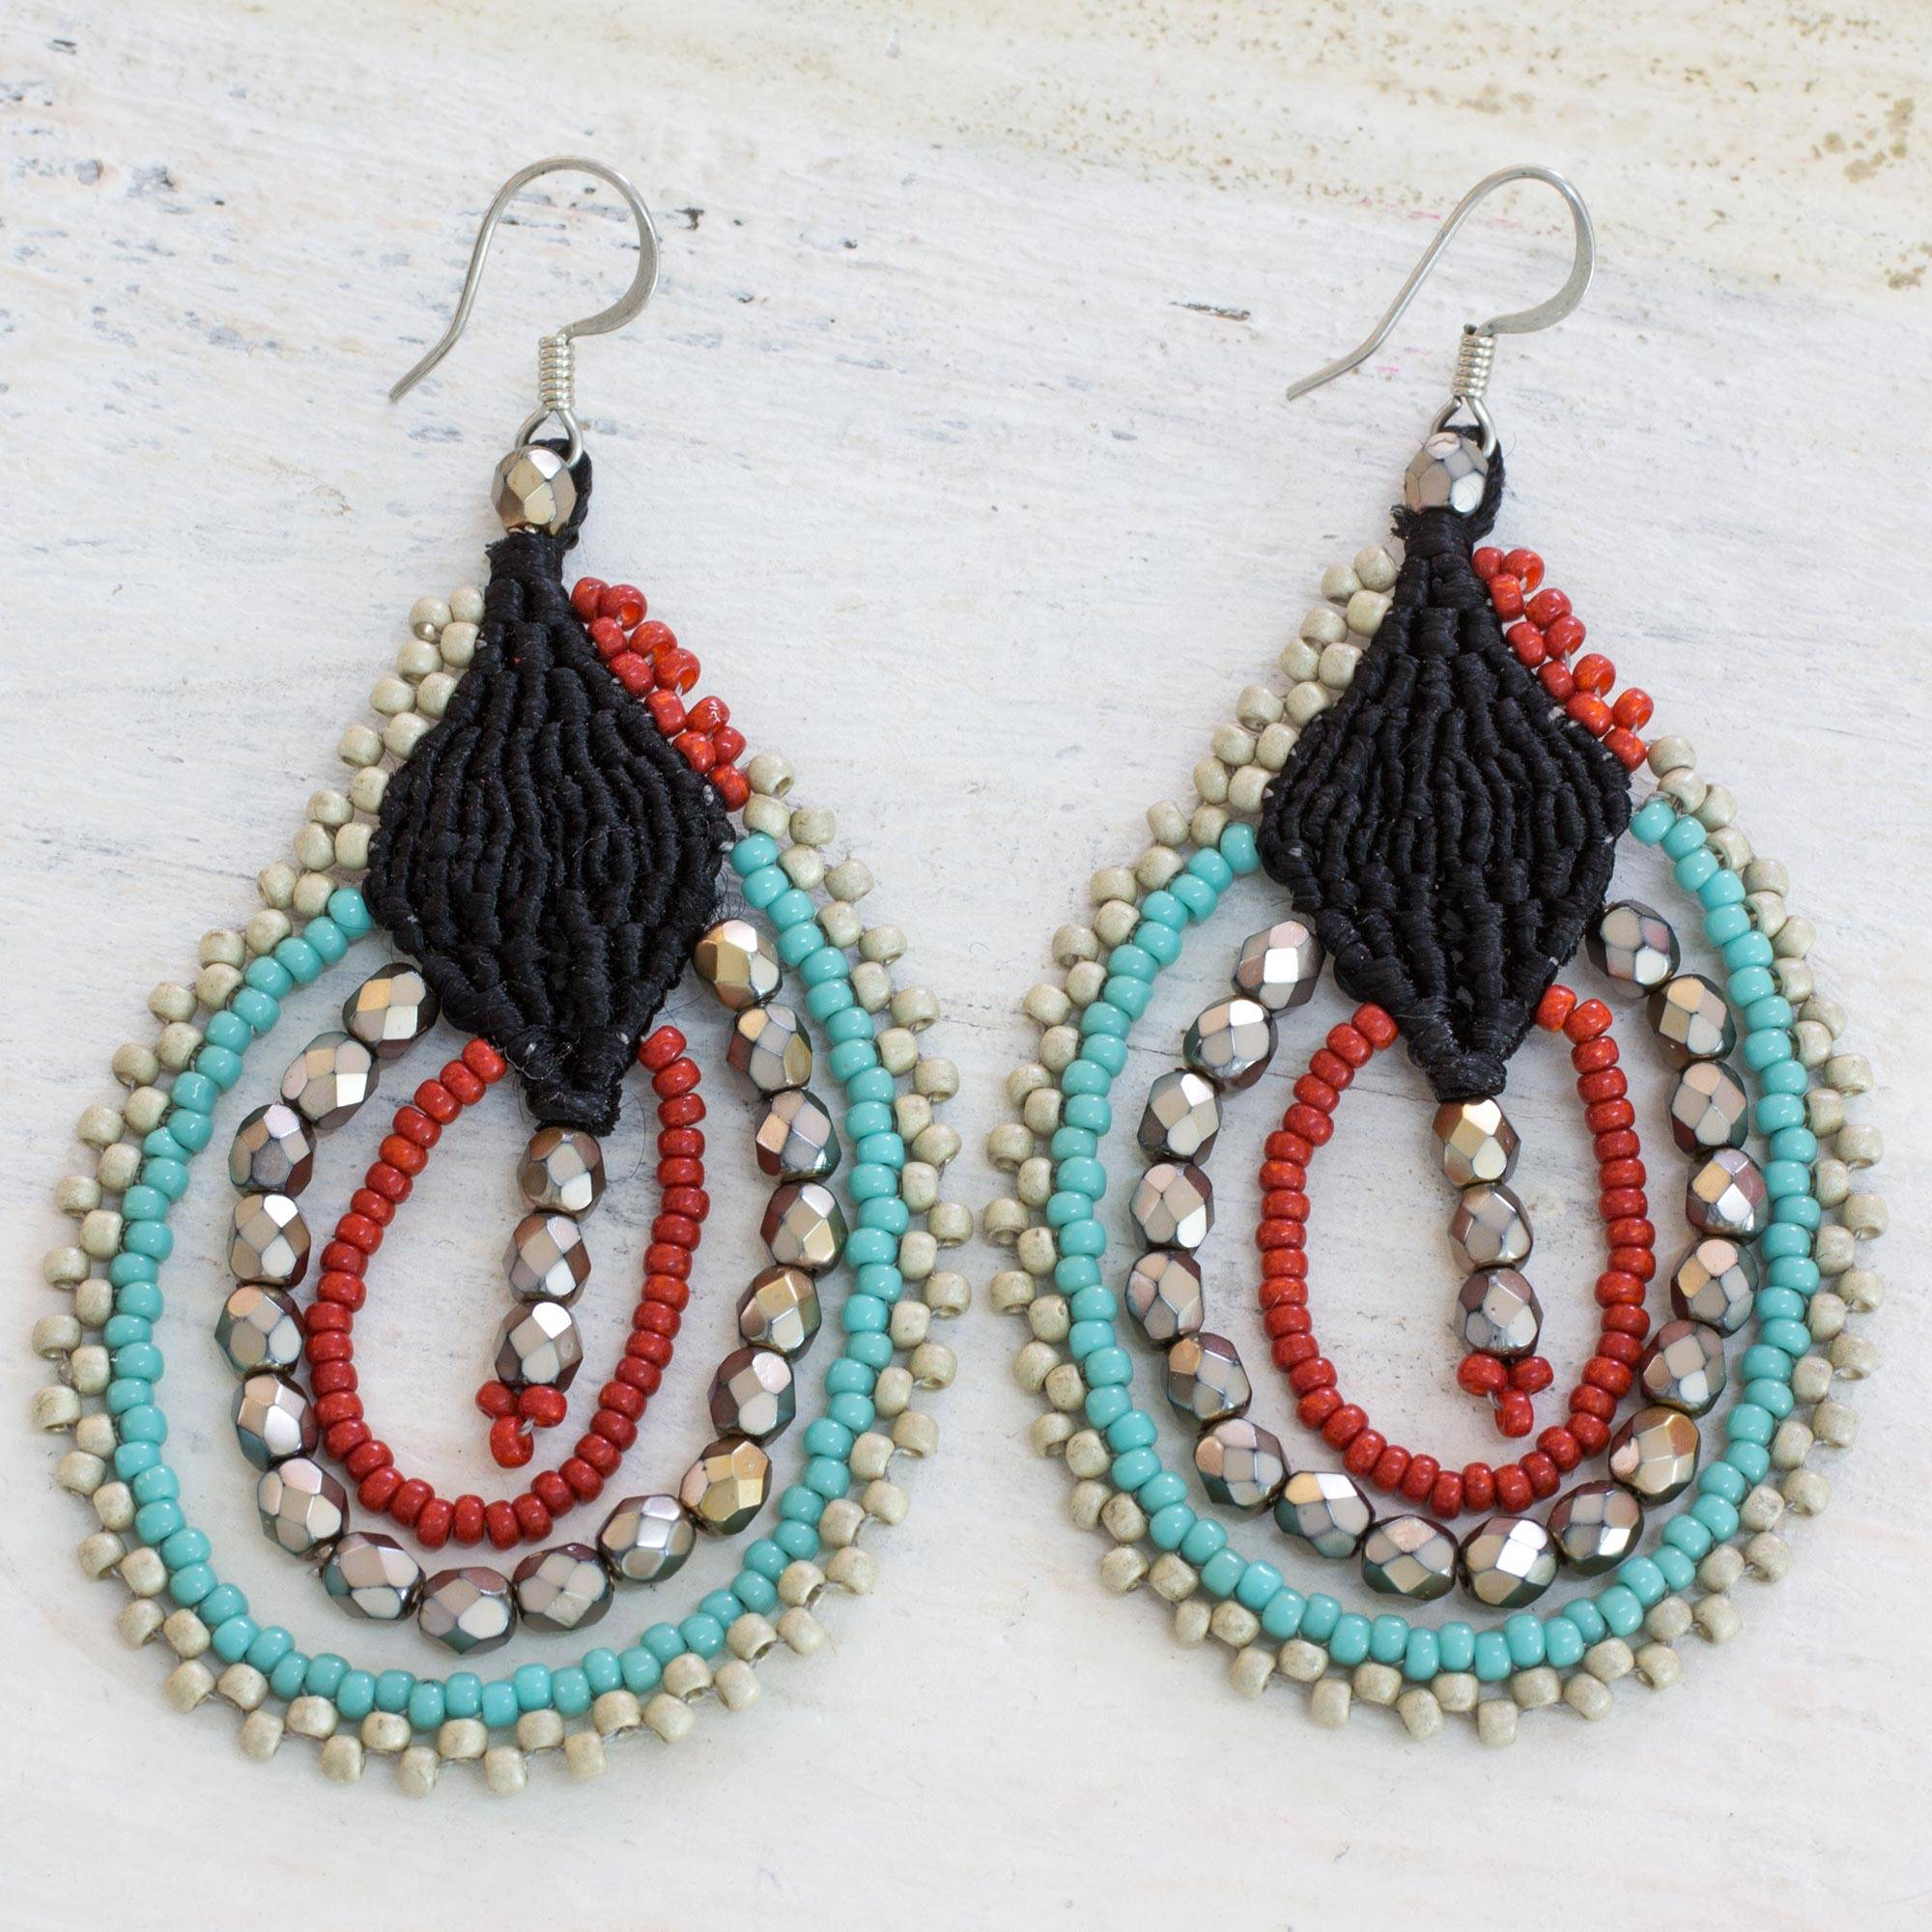 Inspiring Feasts Earrings Artisan Crafted Guatemalan Beaded Earrings in Blue and Red Ethnic Jewelry